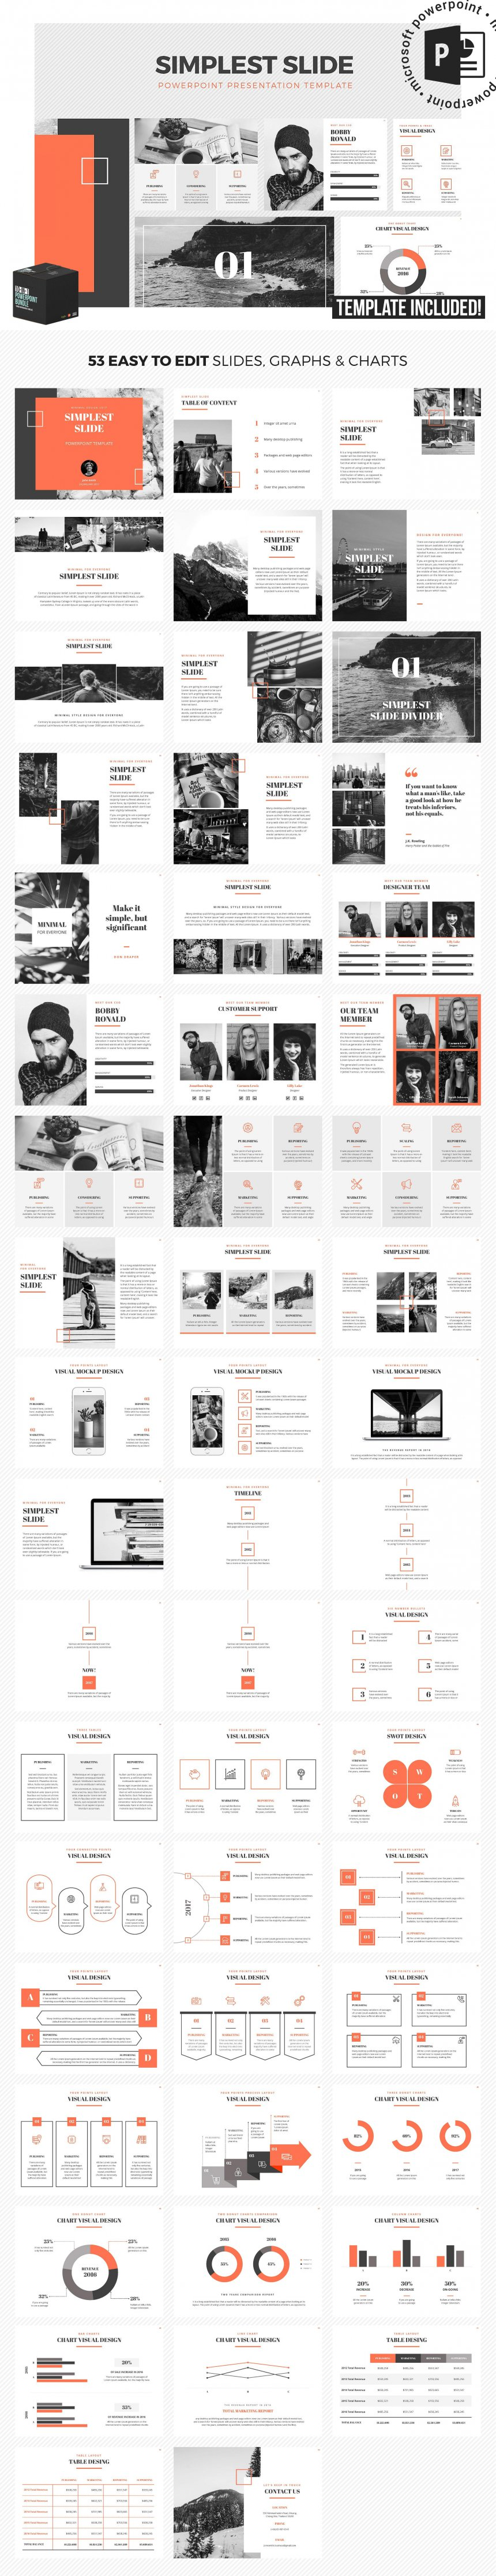 10 creative and professional powerpoint templates plus bonuses simplest slides powerpoint template toneelgroepblik Image collections